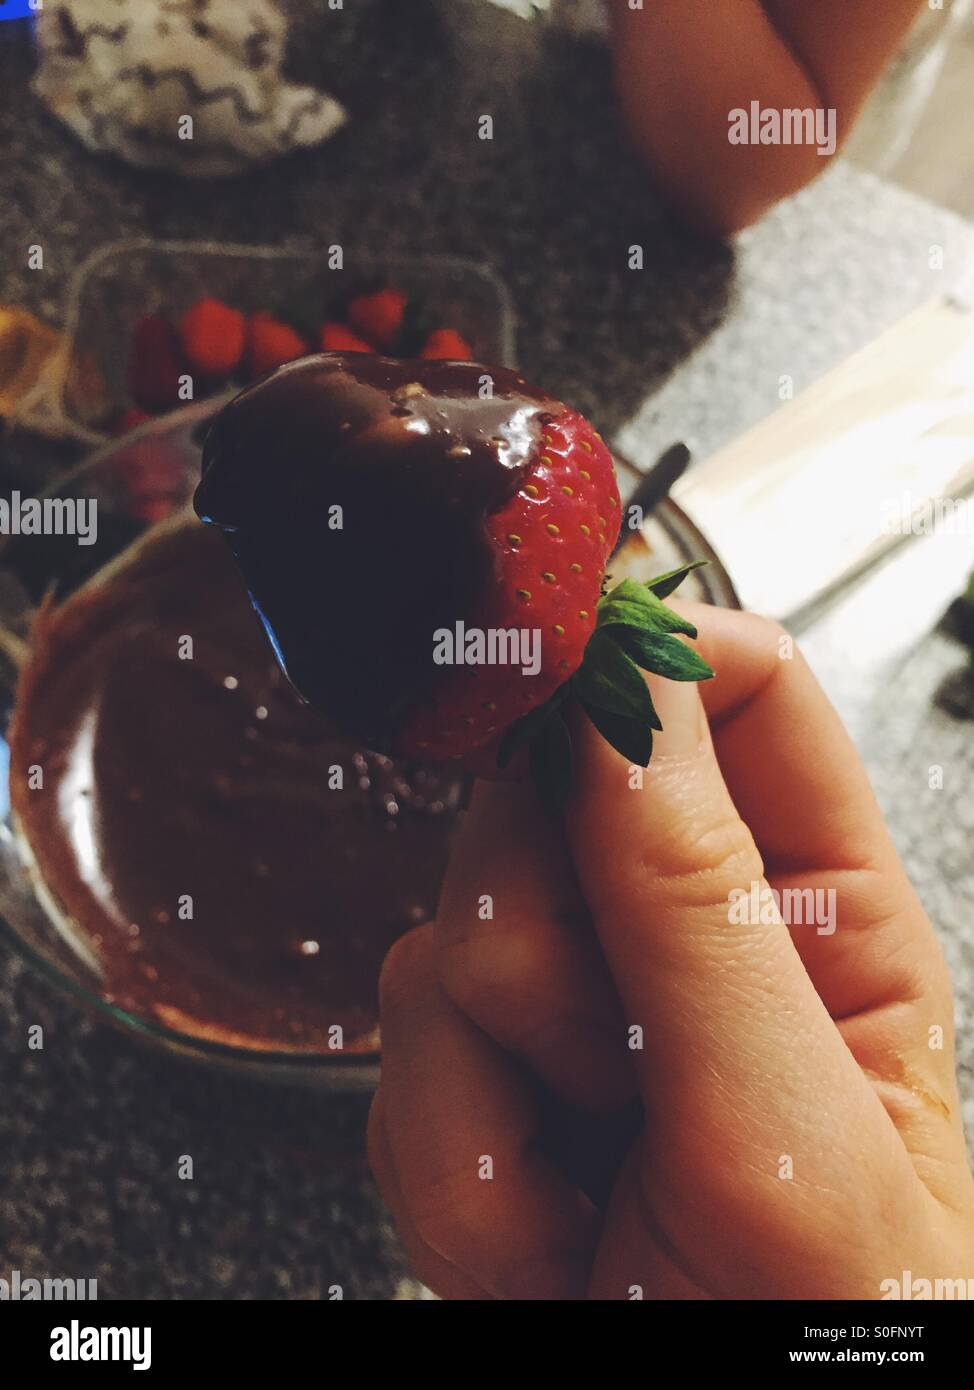 Summertime strawberry - Stock Image